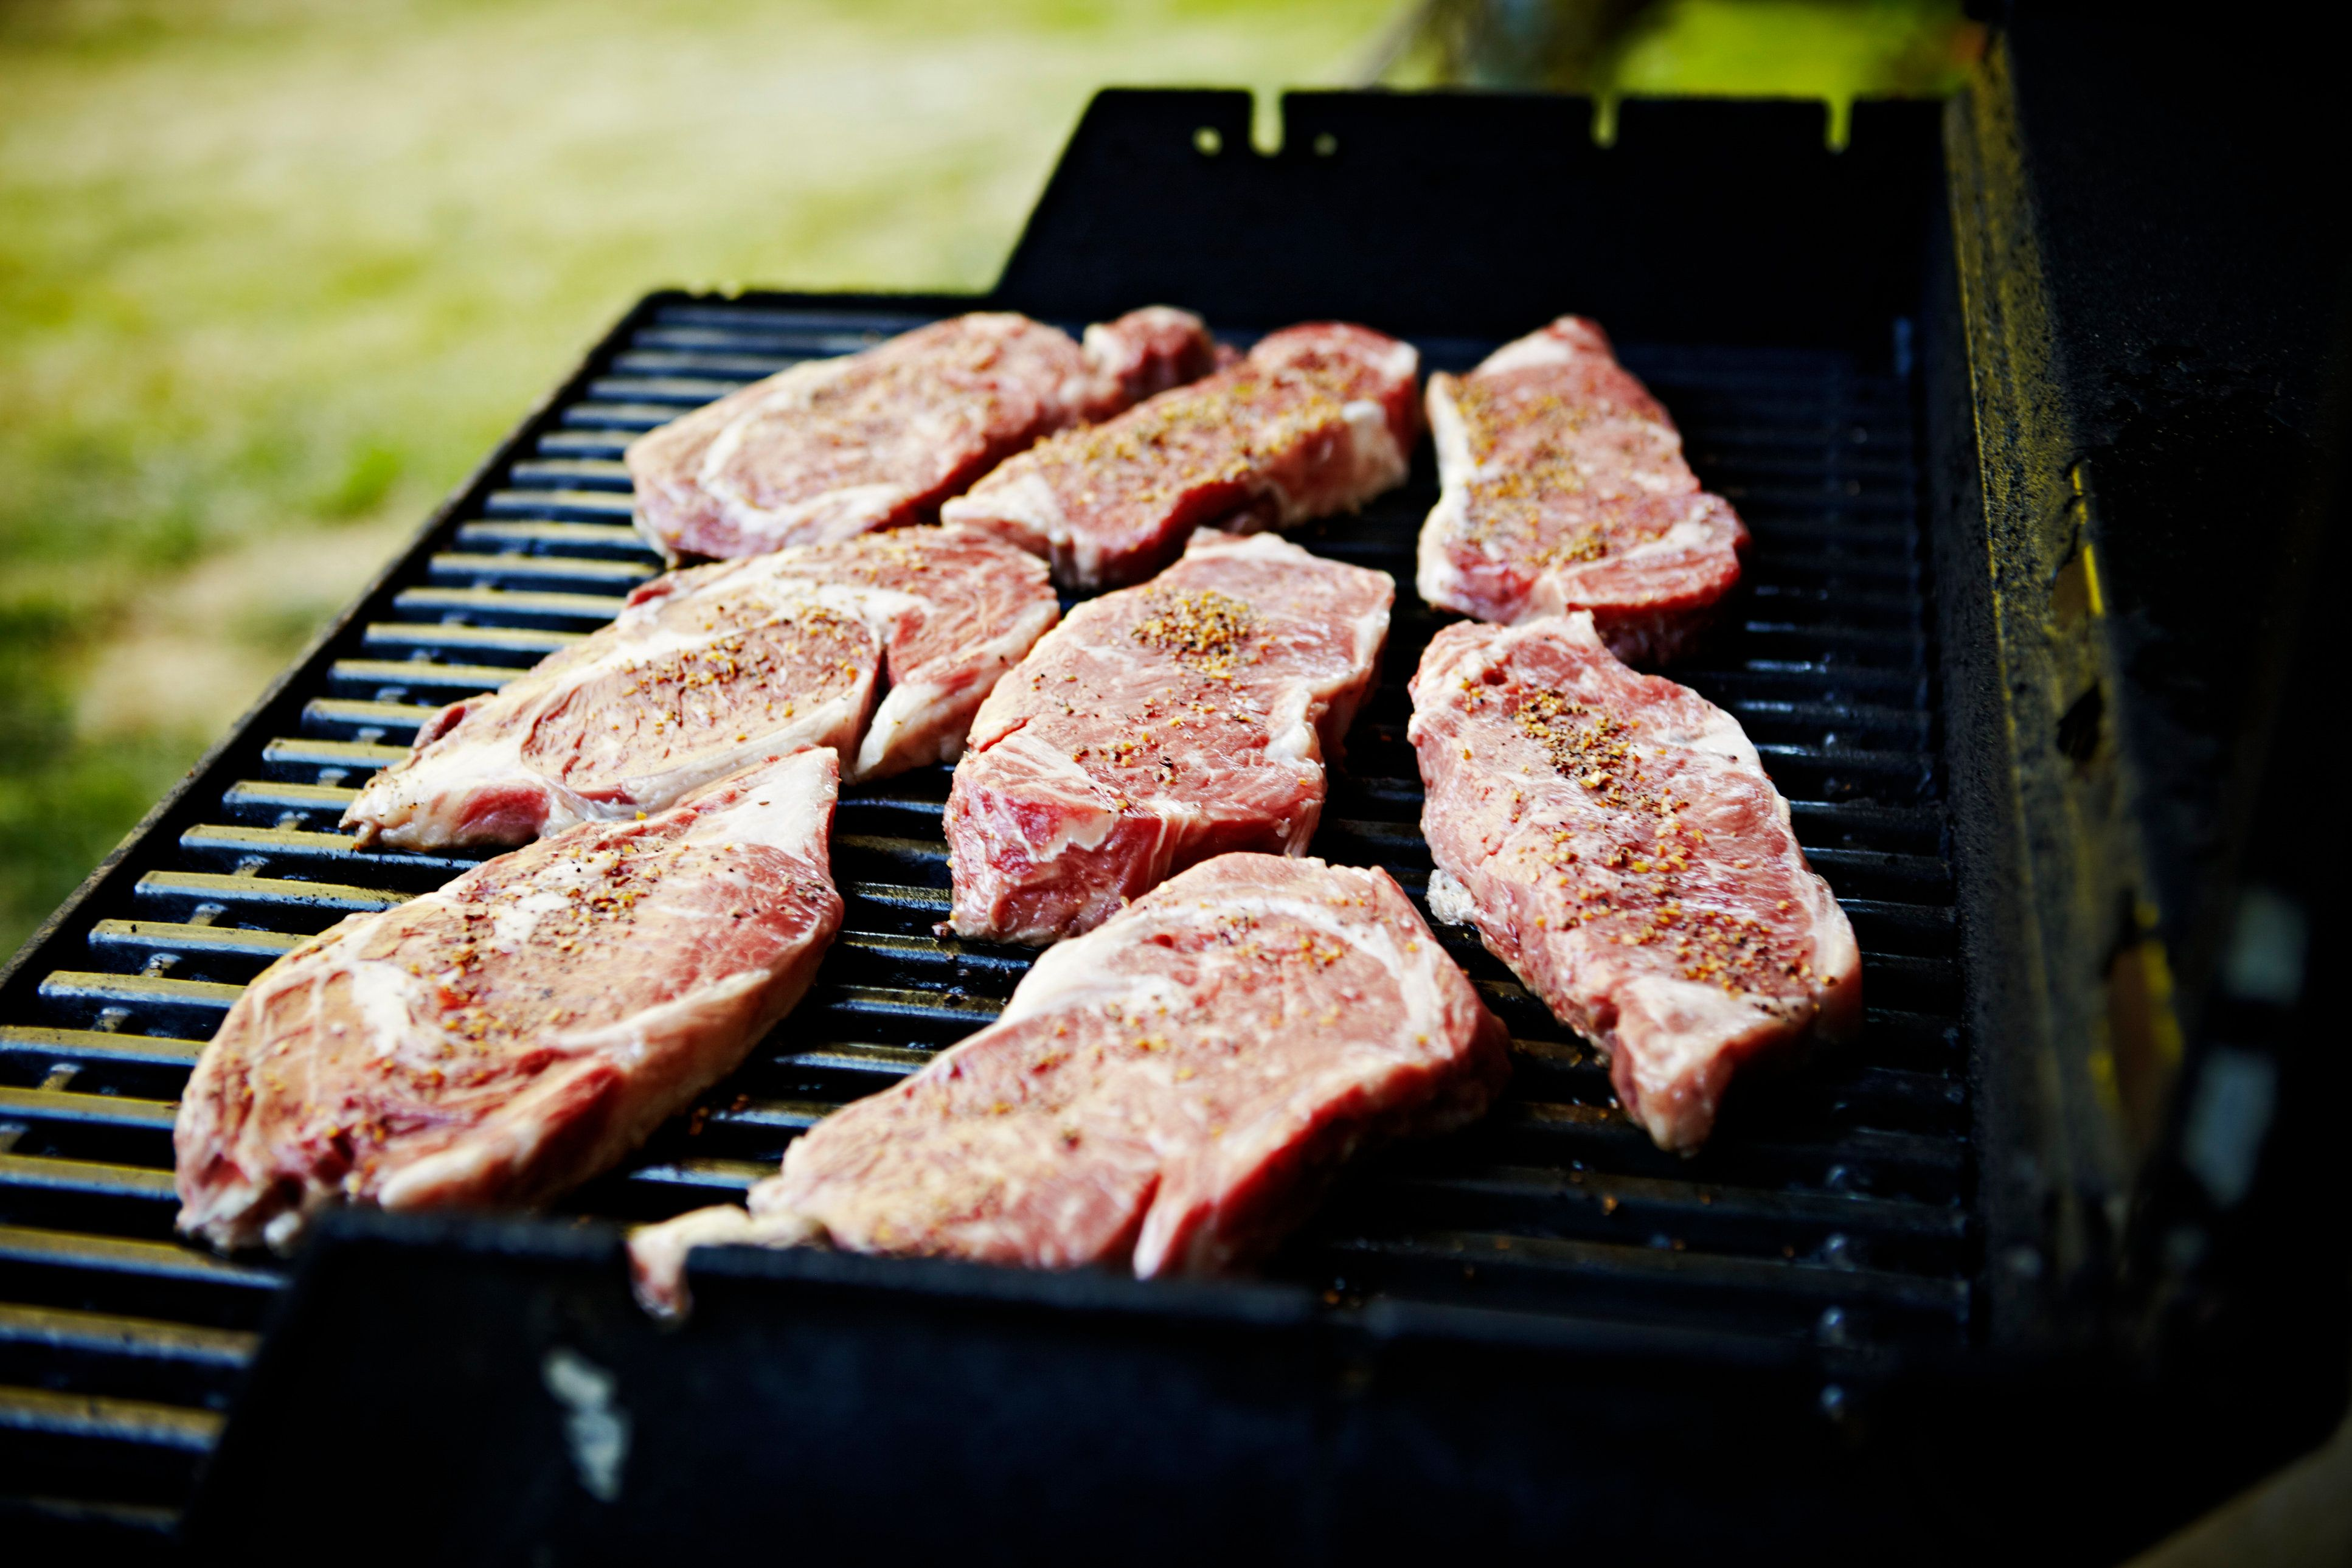 Steaks grilling on barbecue